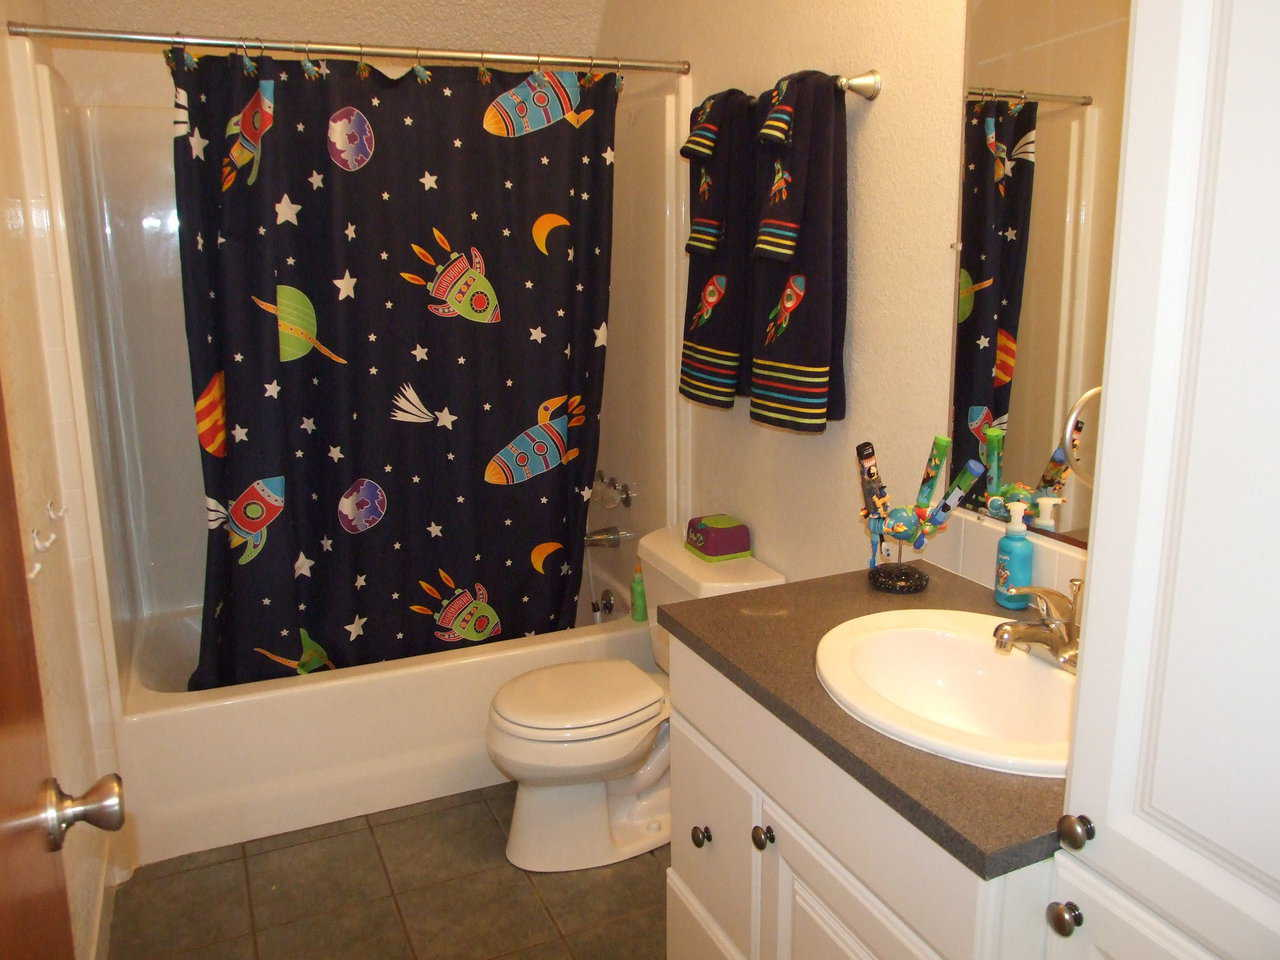 Bathroom — It includes a shower curtain and towels with an outer space design.